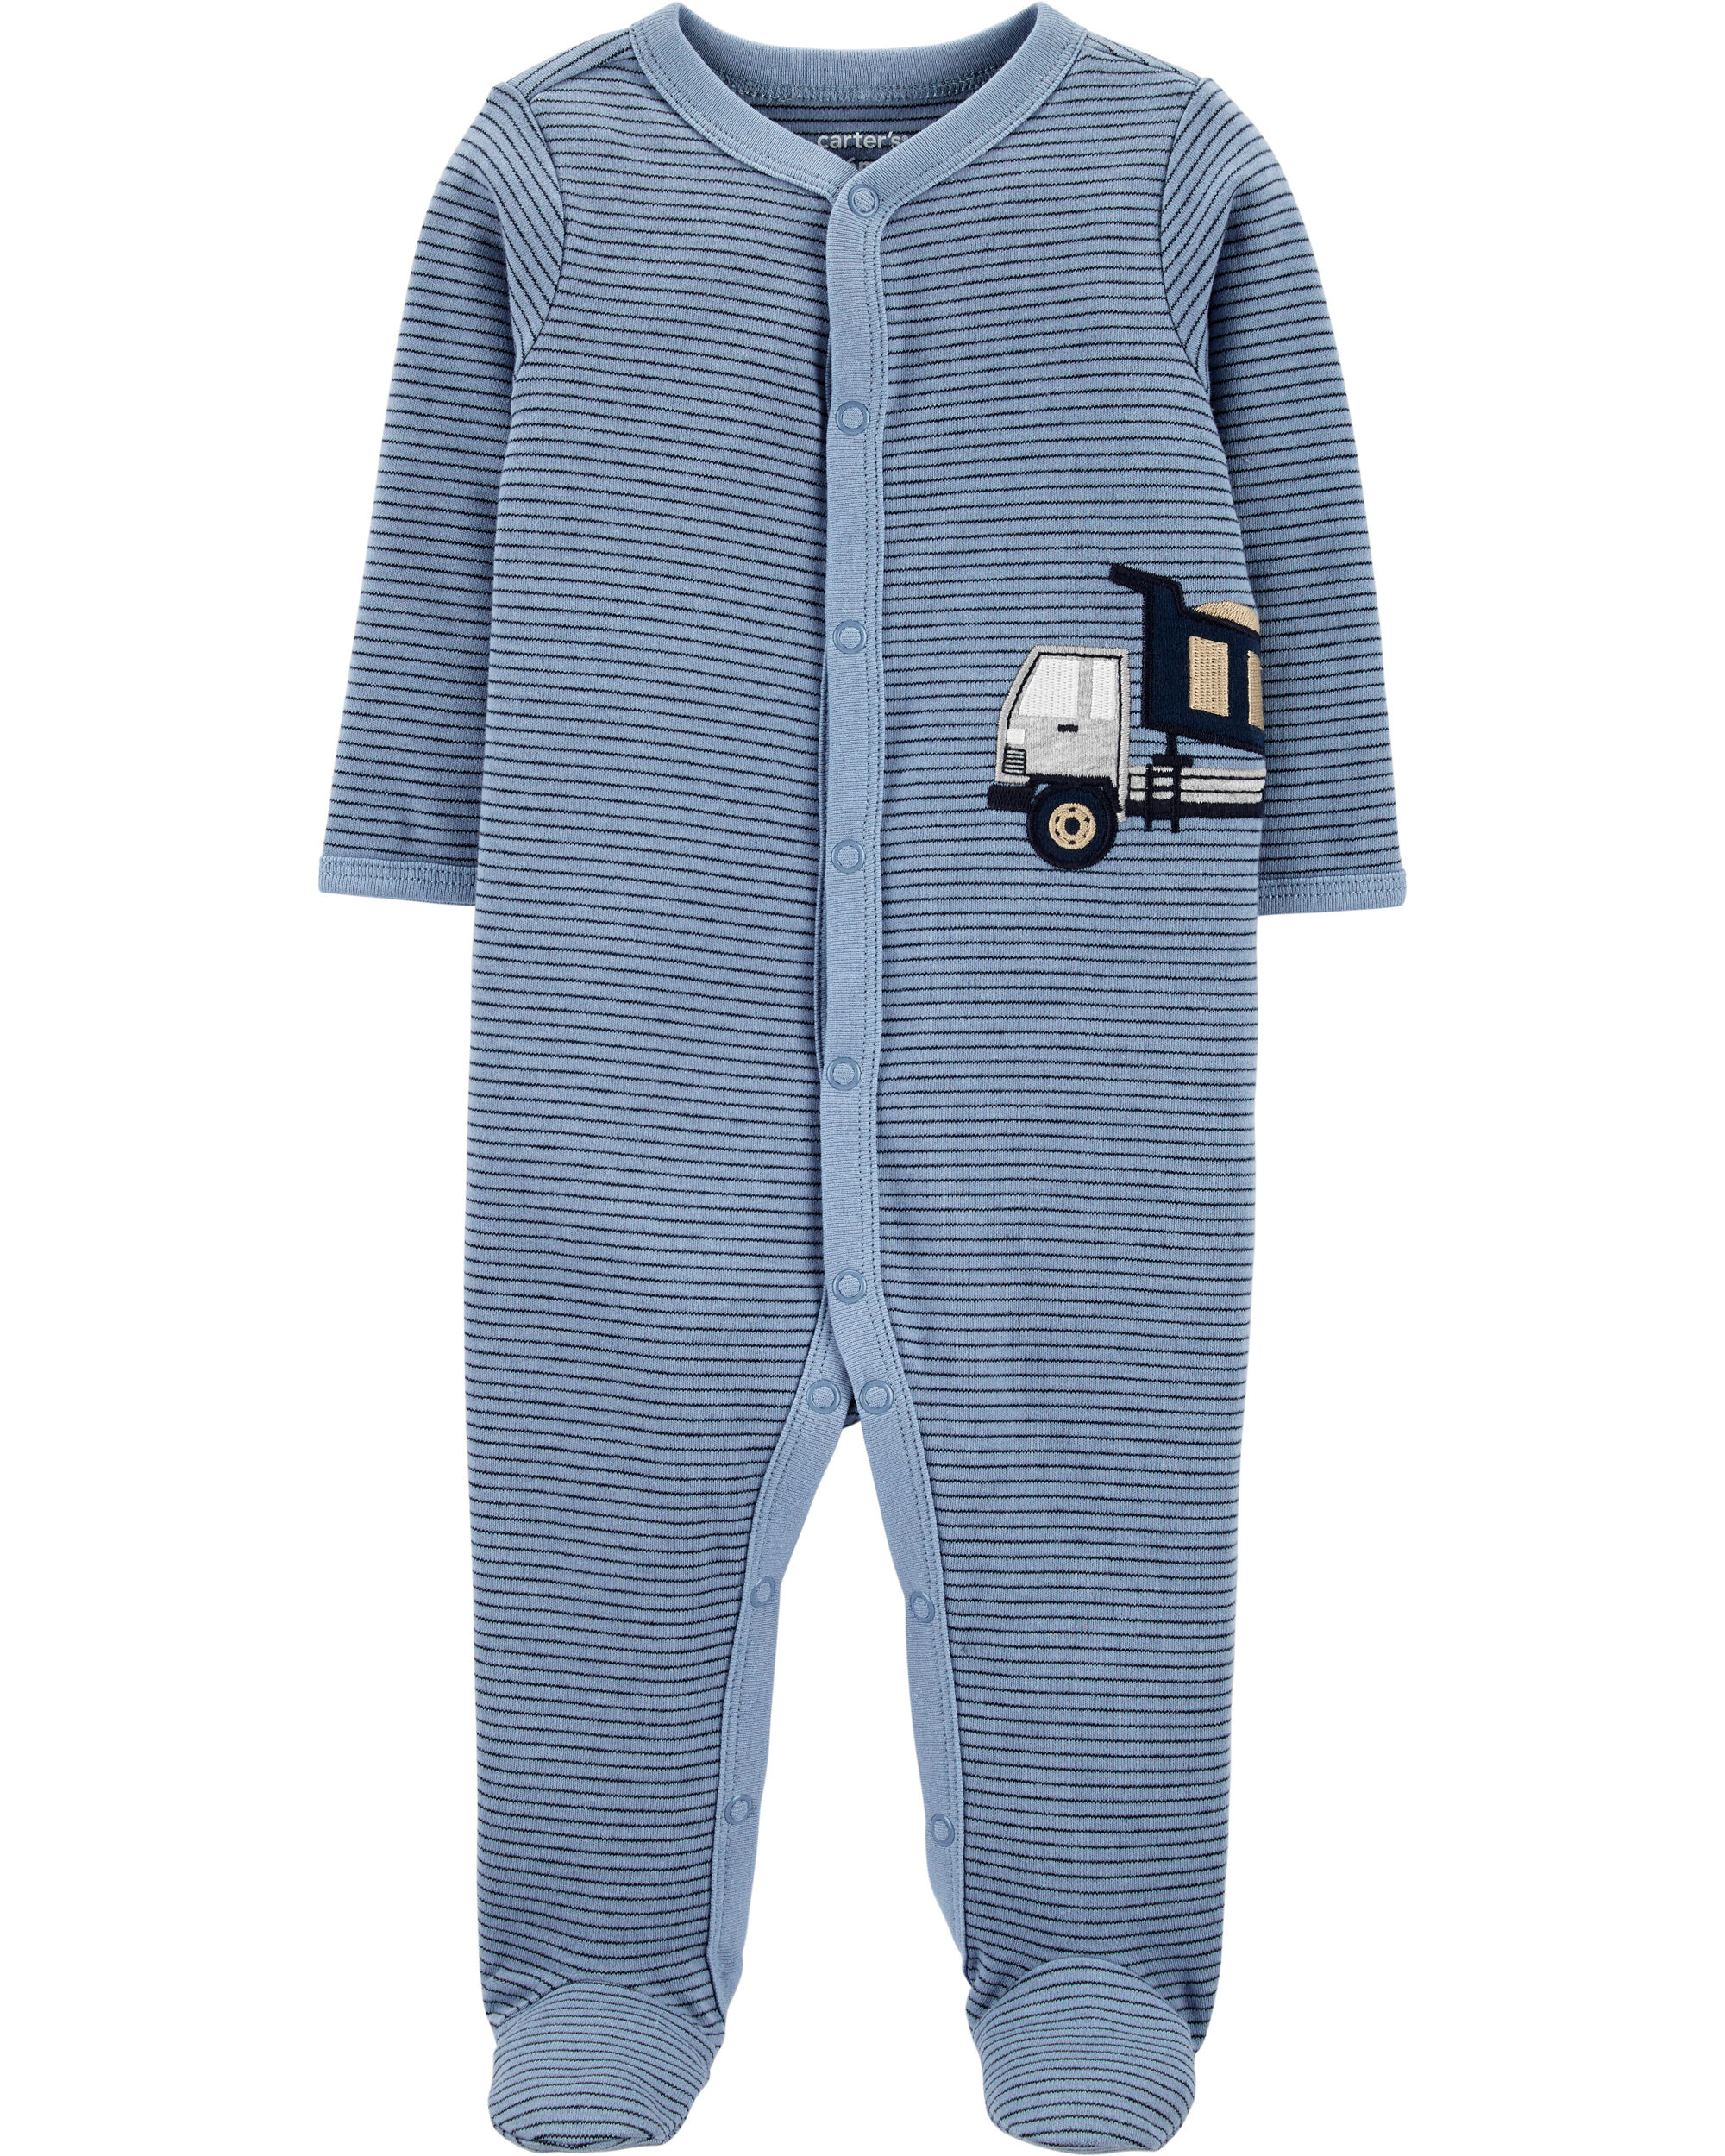 Construction Truck Snap-Up Cotton Sleep & Play